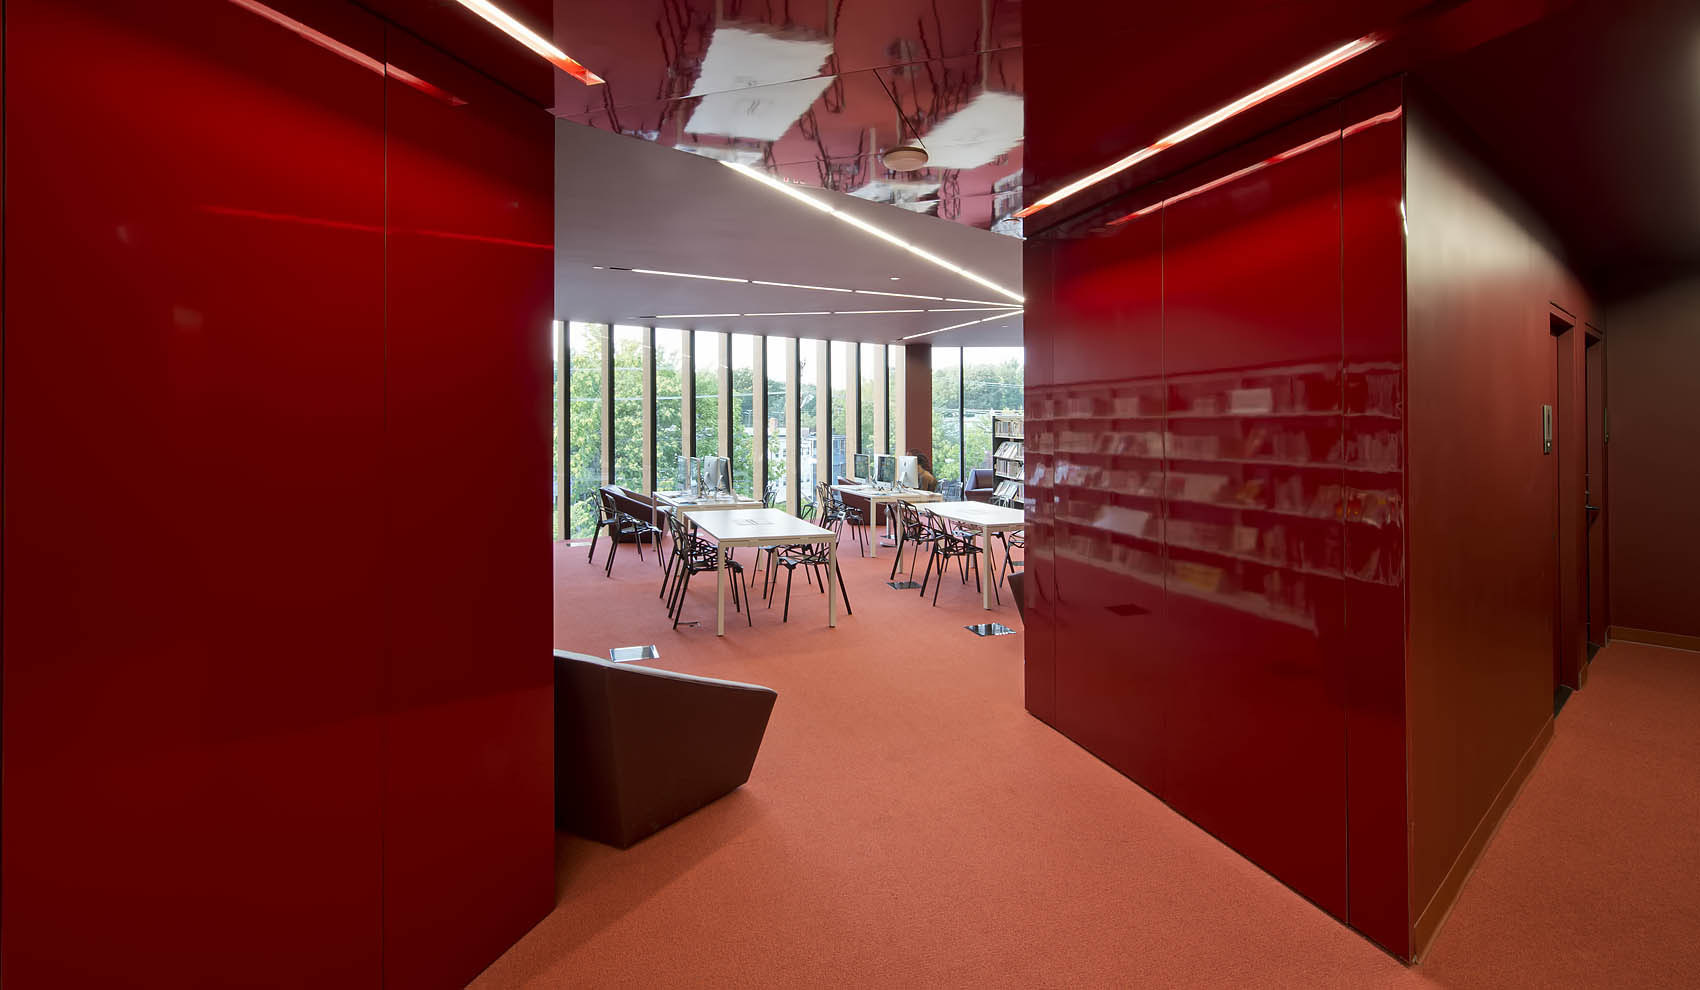 angled red walls lead into study area